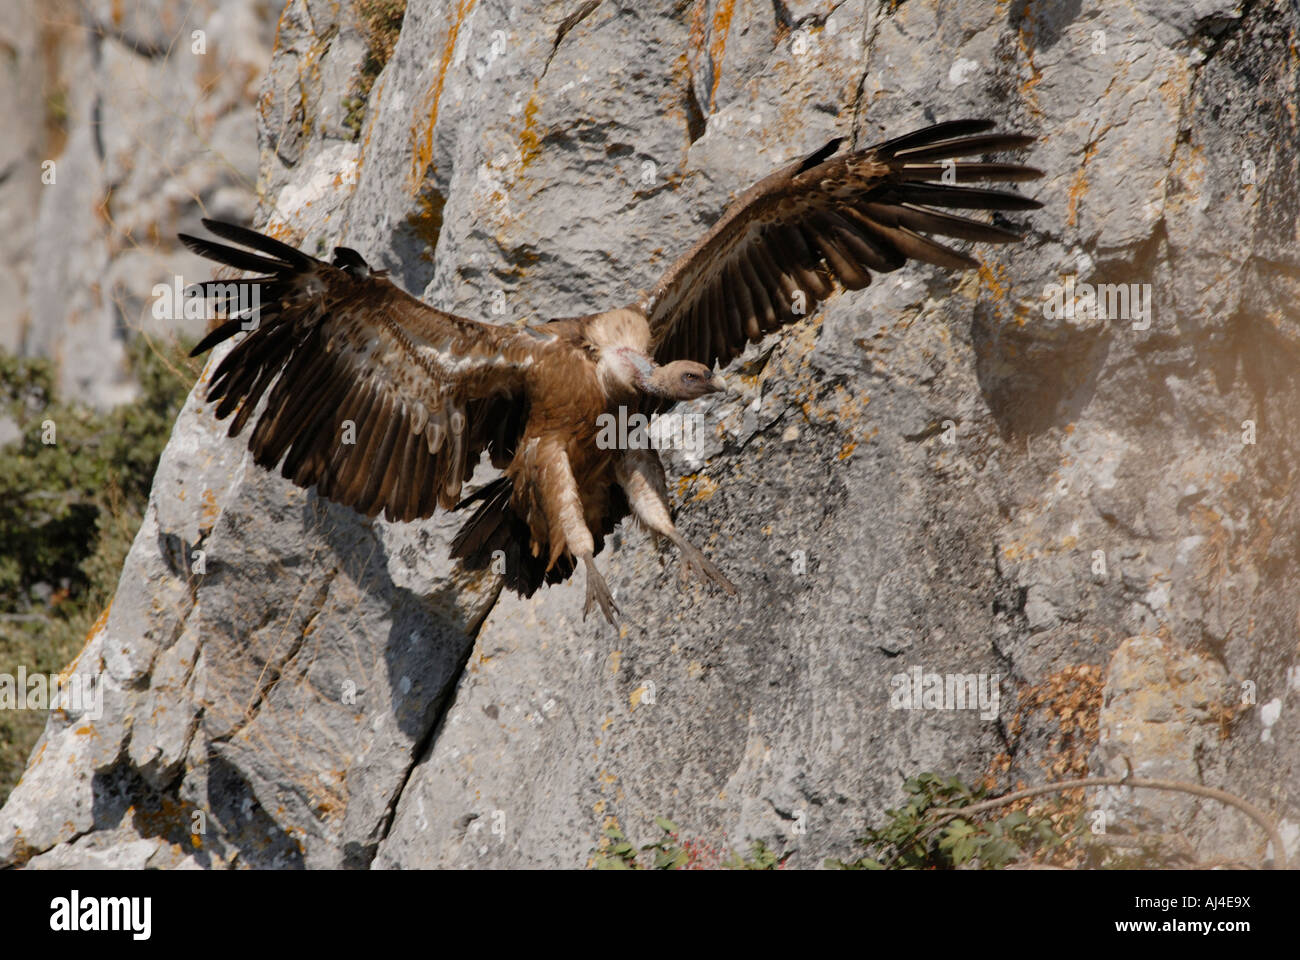 Adult Griffon Vulture about to land with wings swept forward - Stock Image